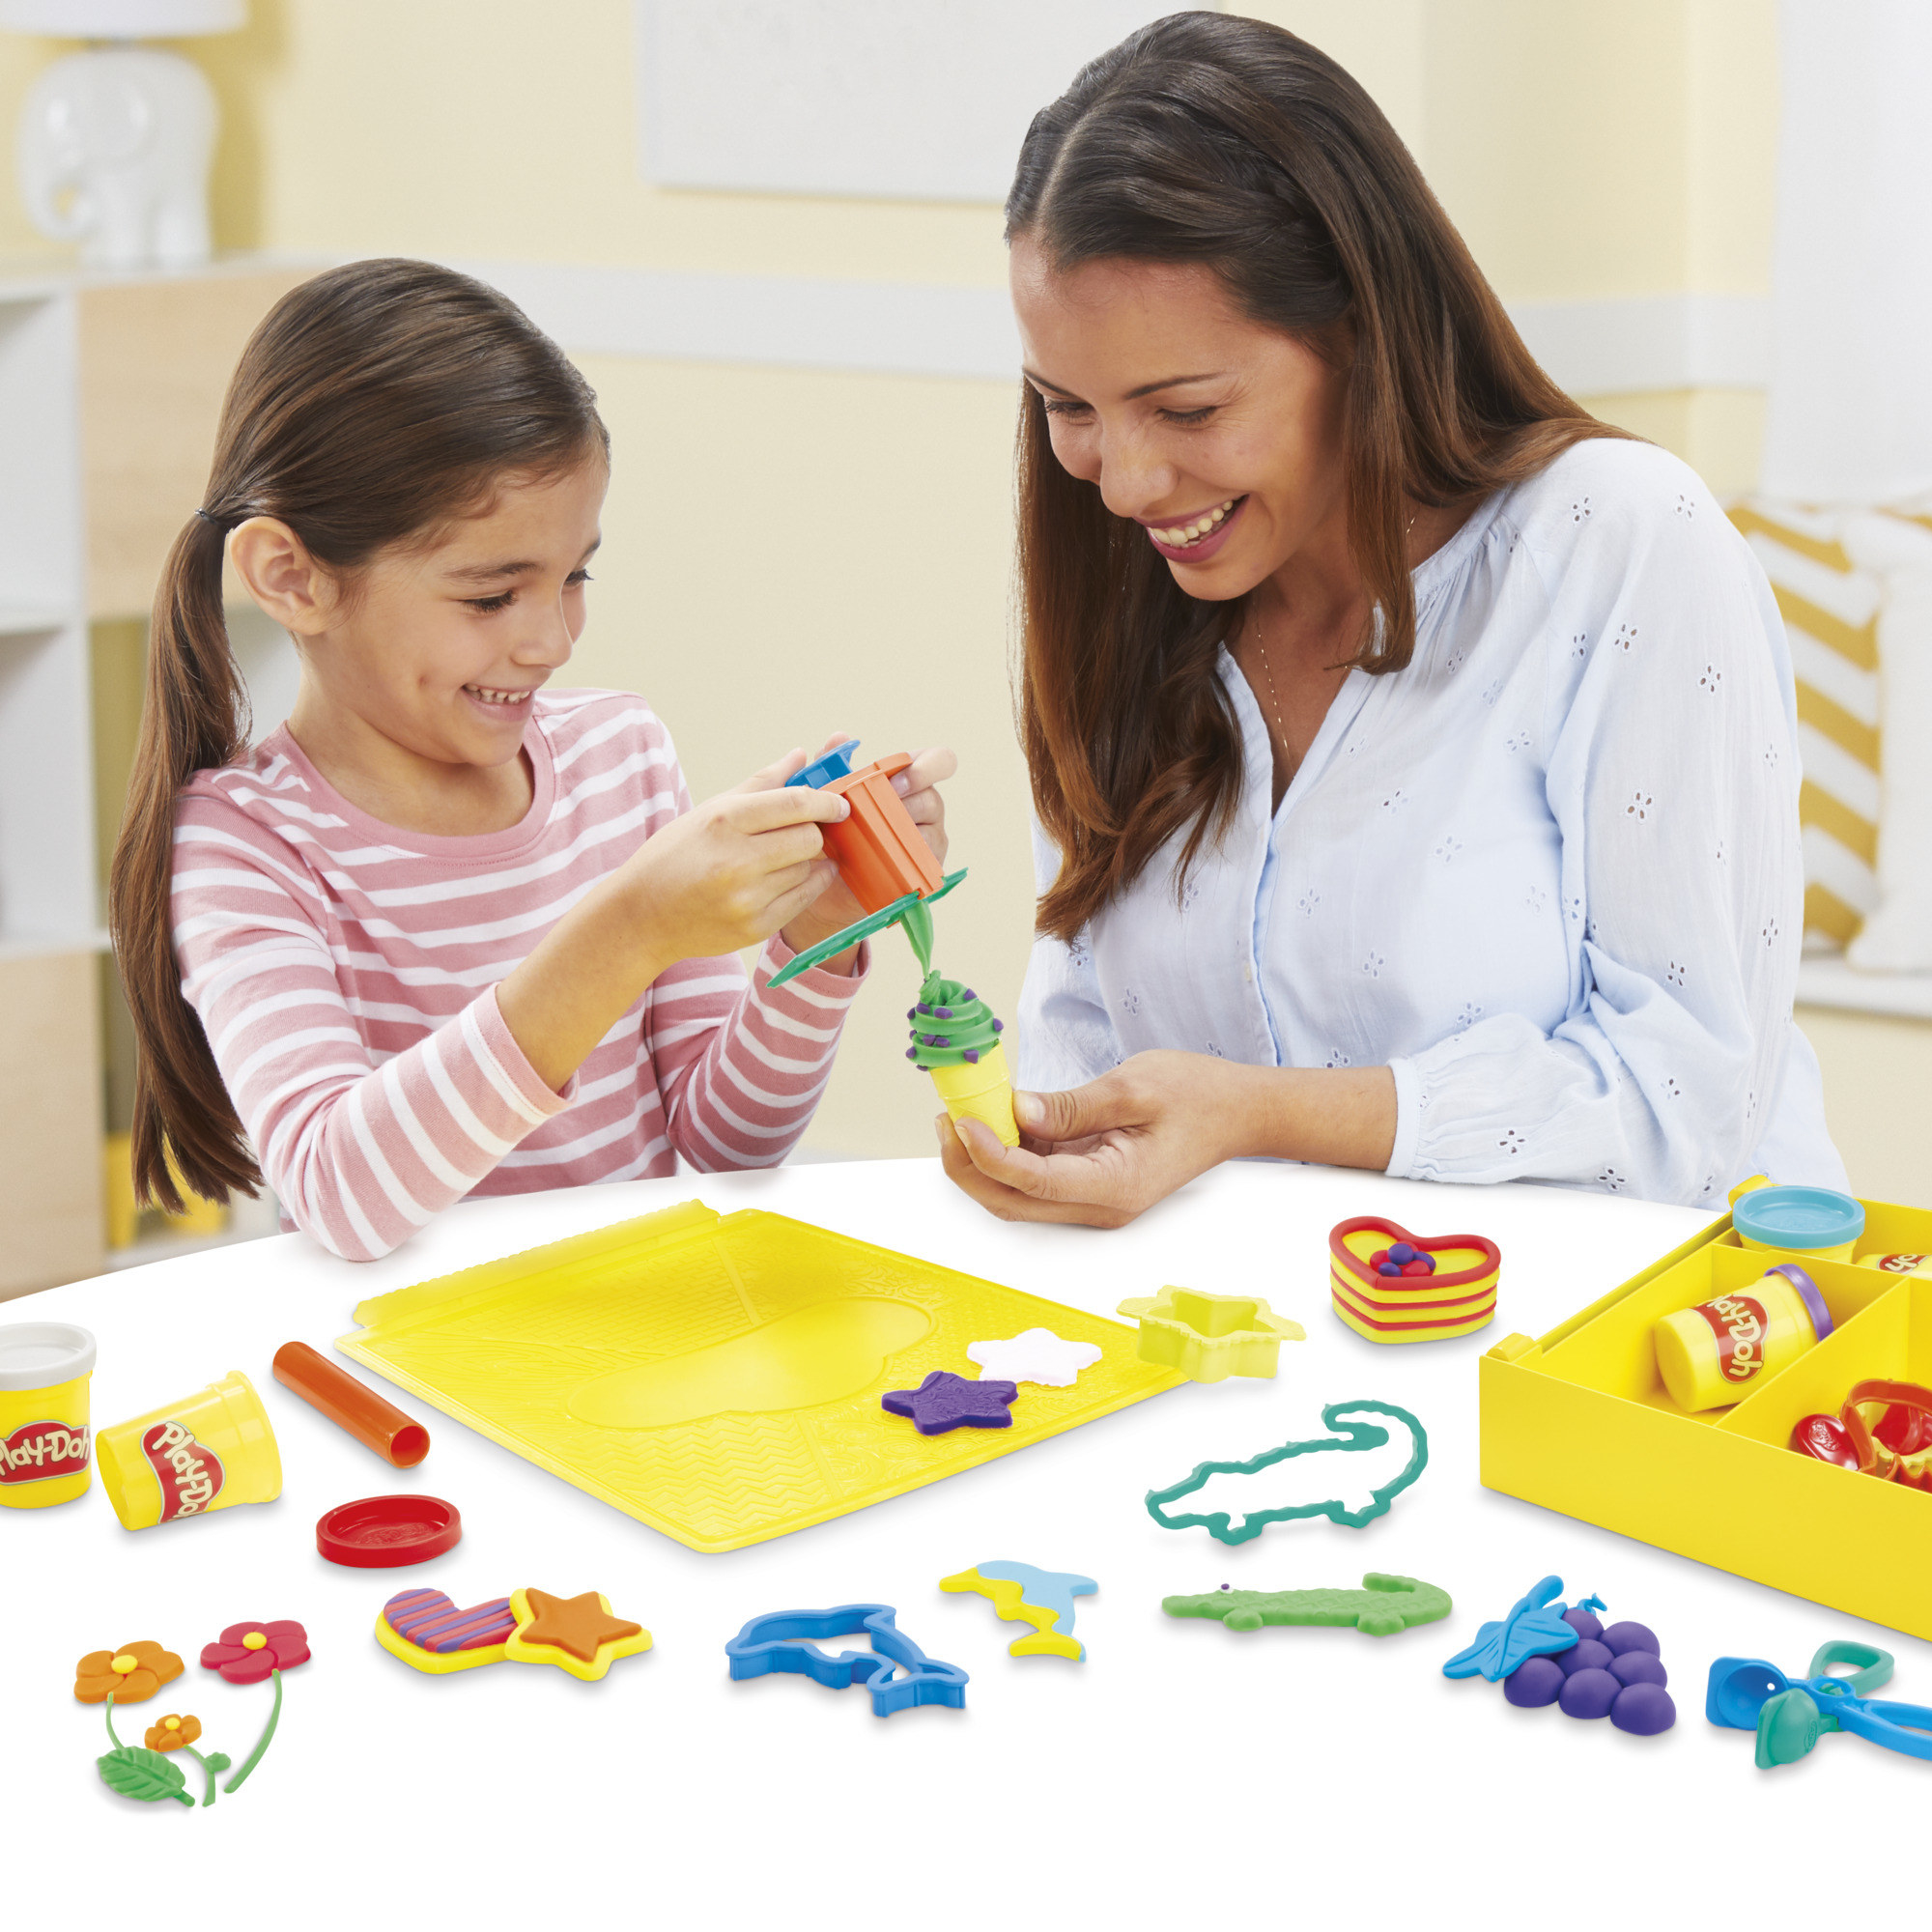 a parent and a child playing with play doh